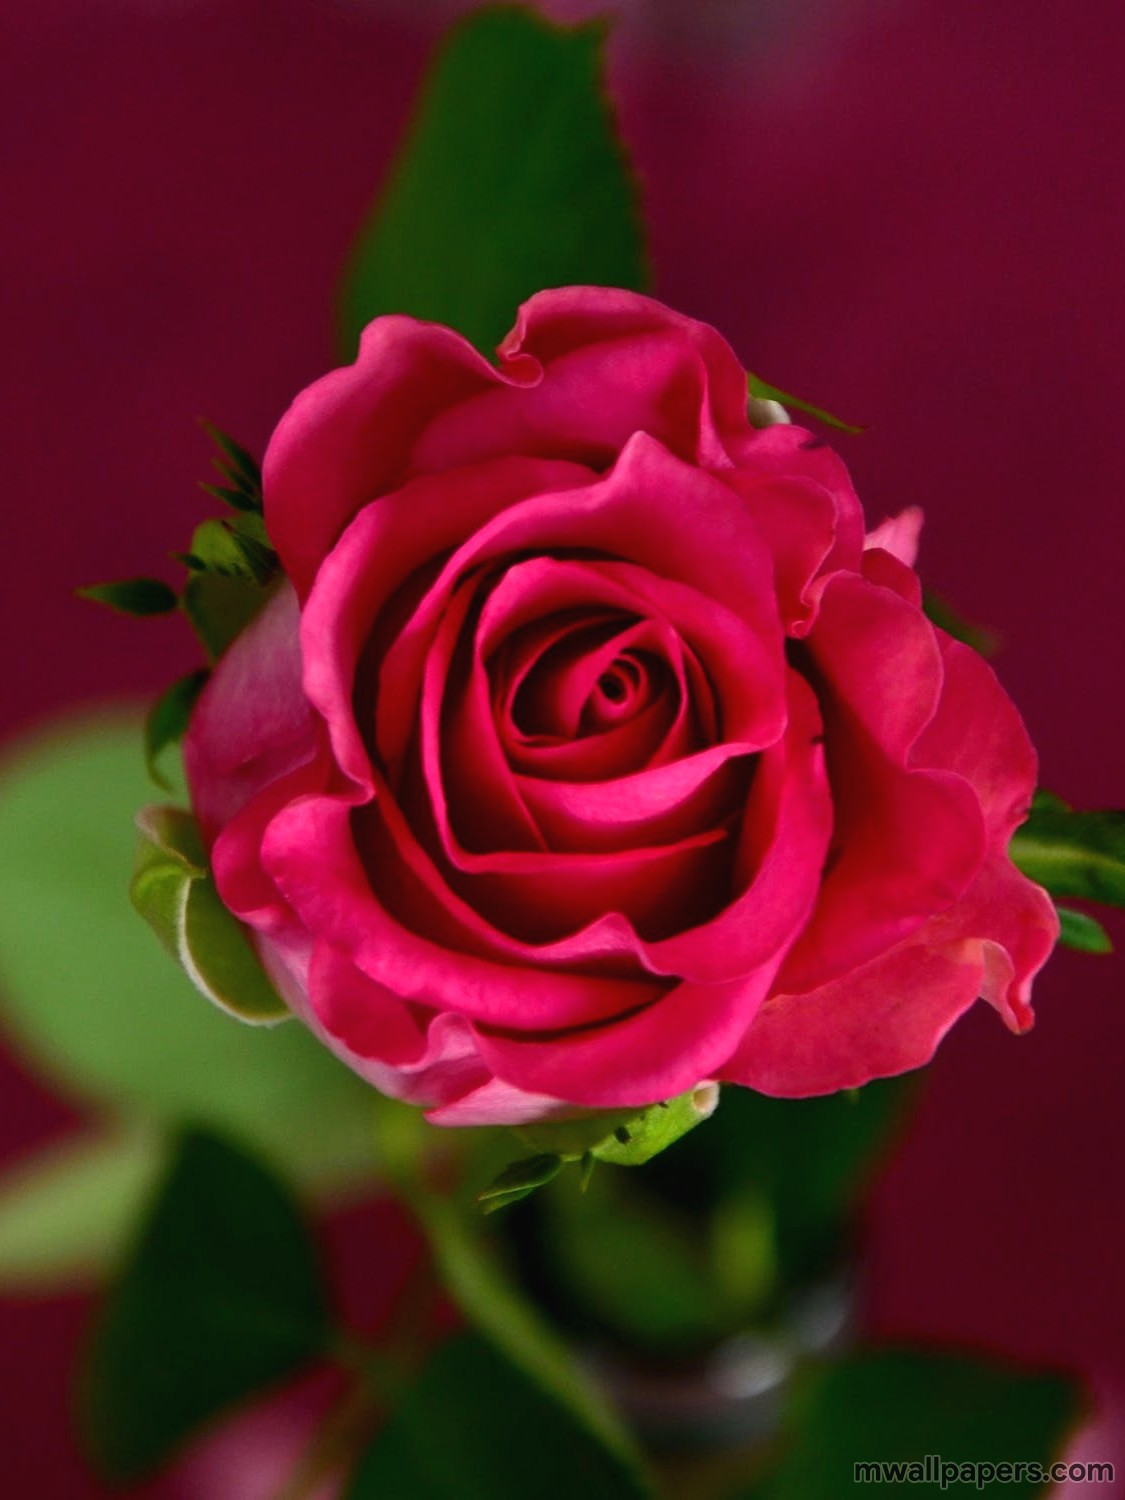 Red Rose Hd Images And Wallpapers - Red Rose Hd Flower , HD Wallpaper & Backgrounds